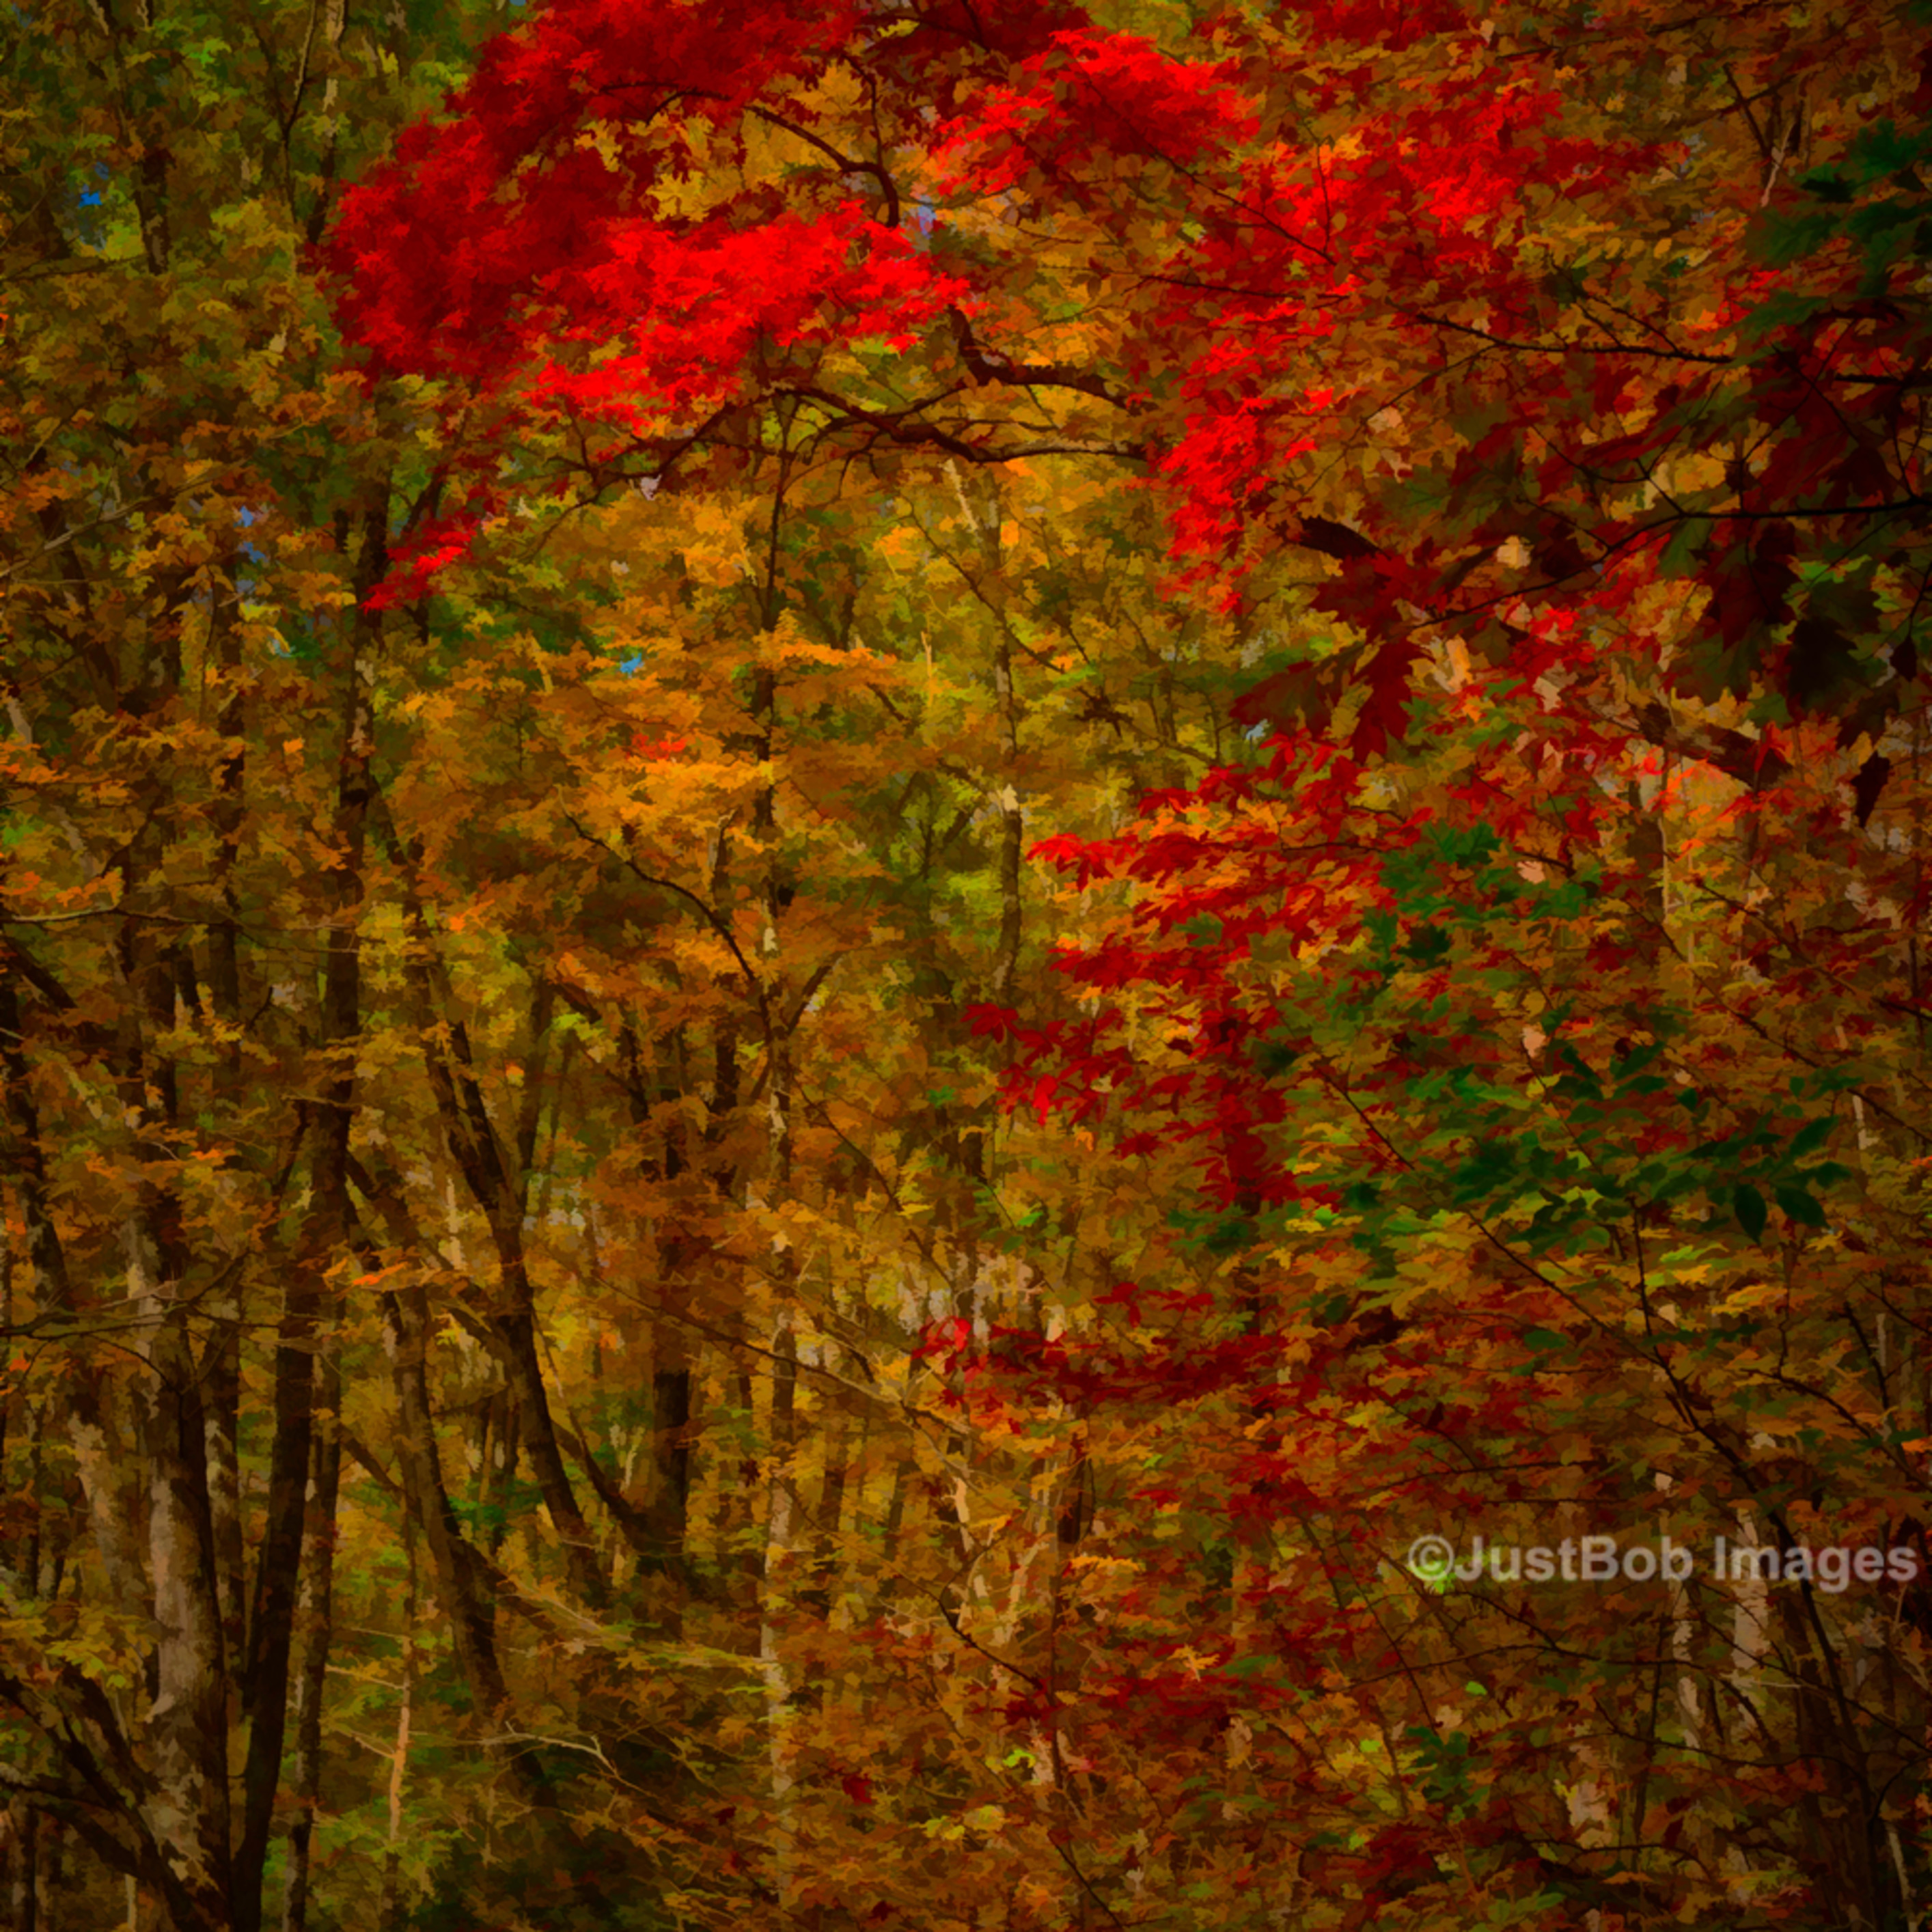 Smokies 20131029 0784 hdr edit rc0ucl